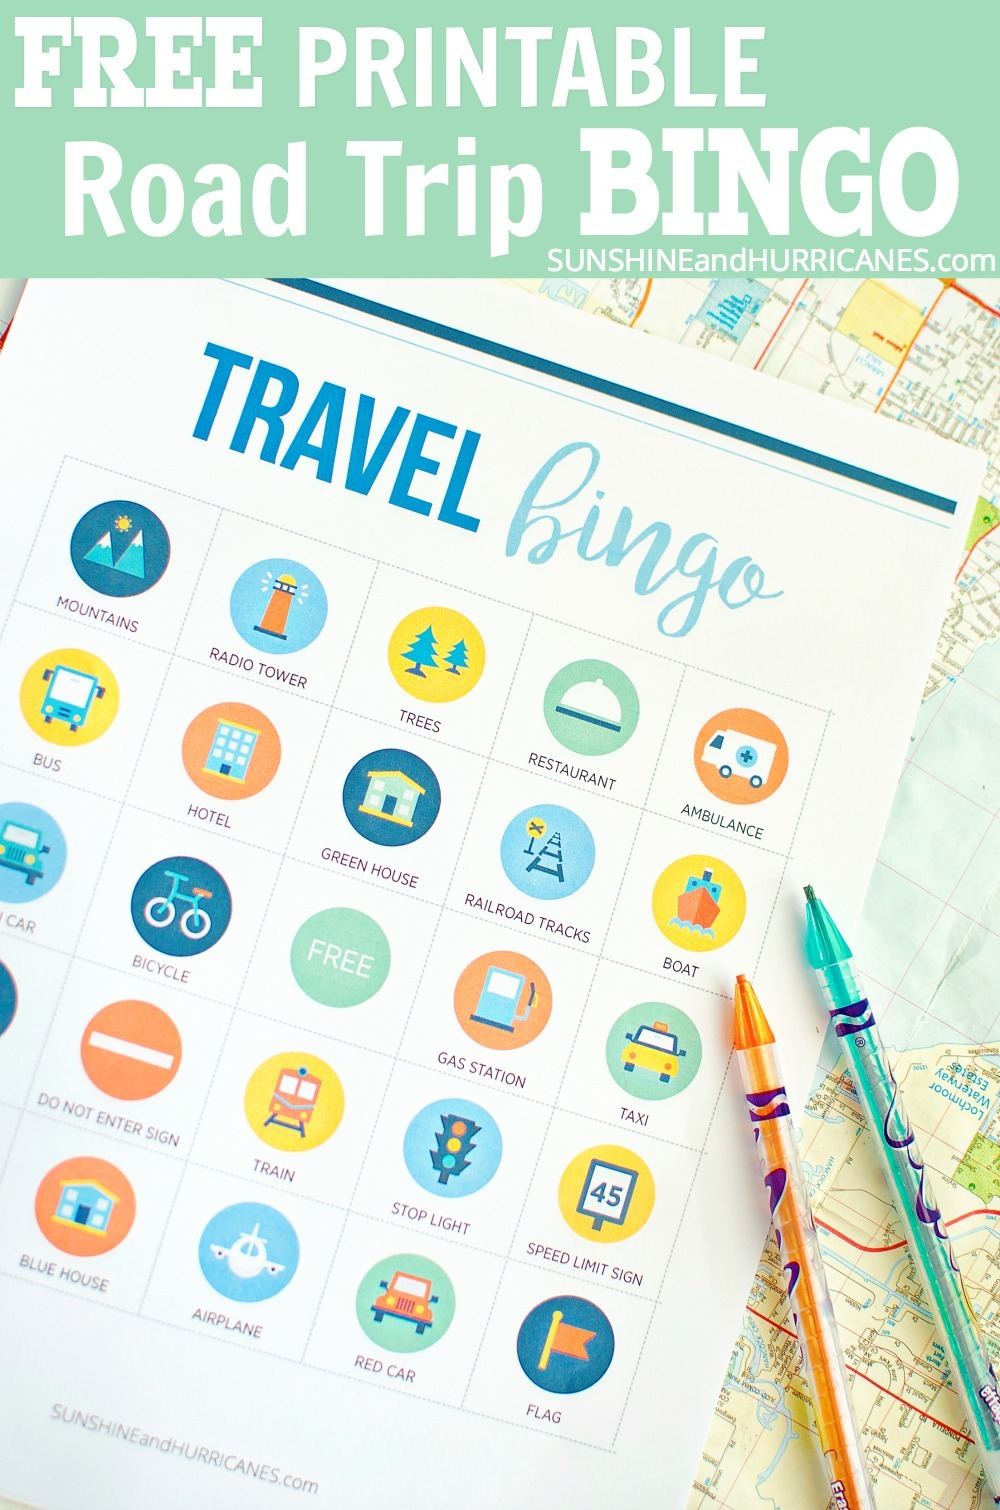 Looking for activities when you're traveling with the kids? This printable road trip bingo will keep them busy and your ride peaceful. Family Road Trip Printable BINGO.